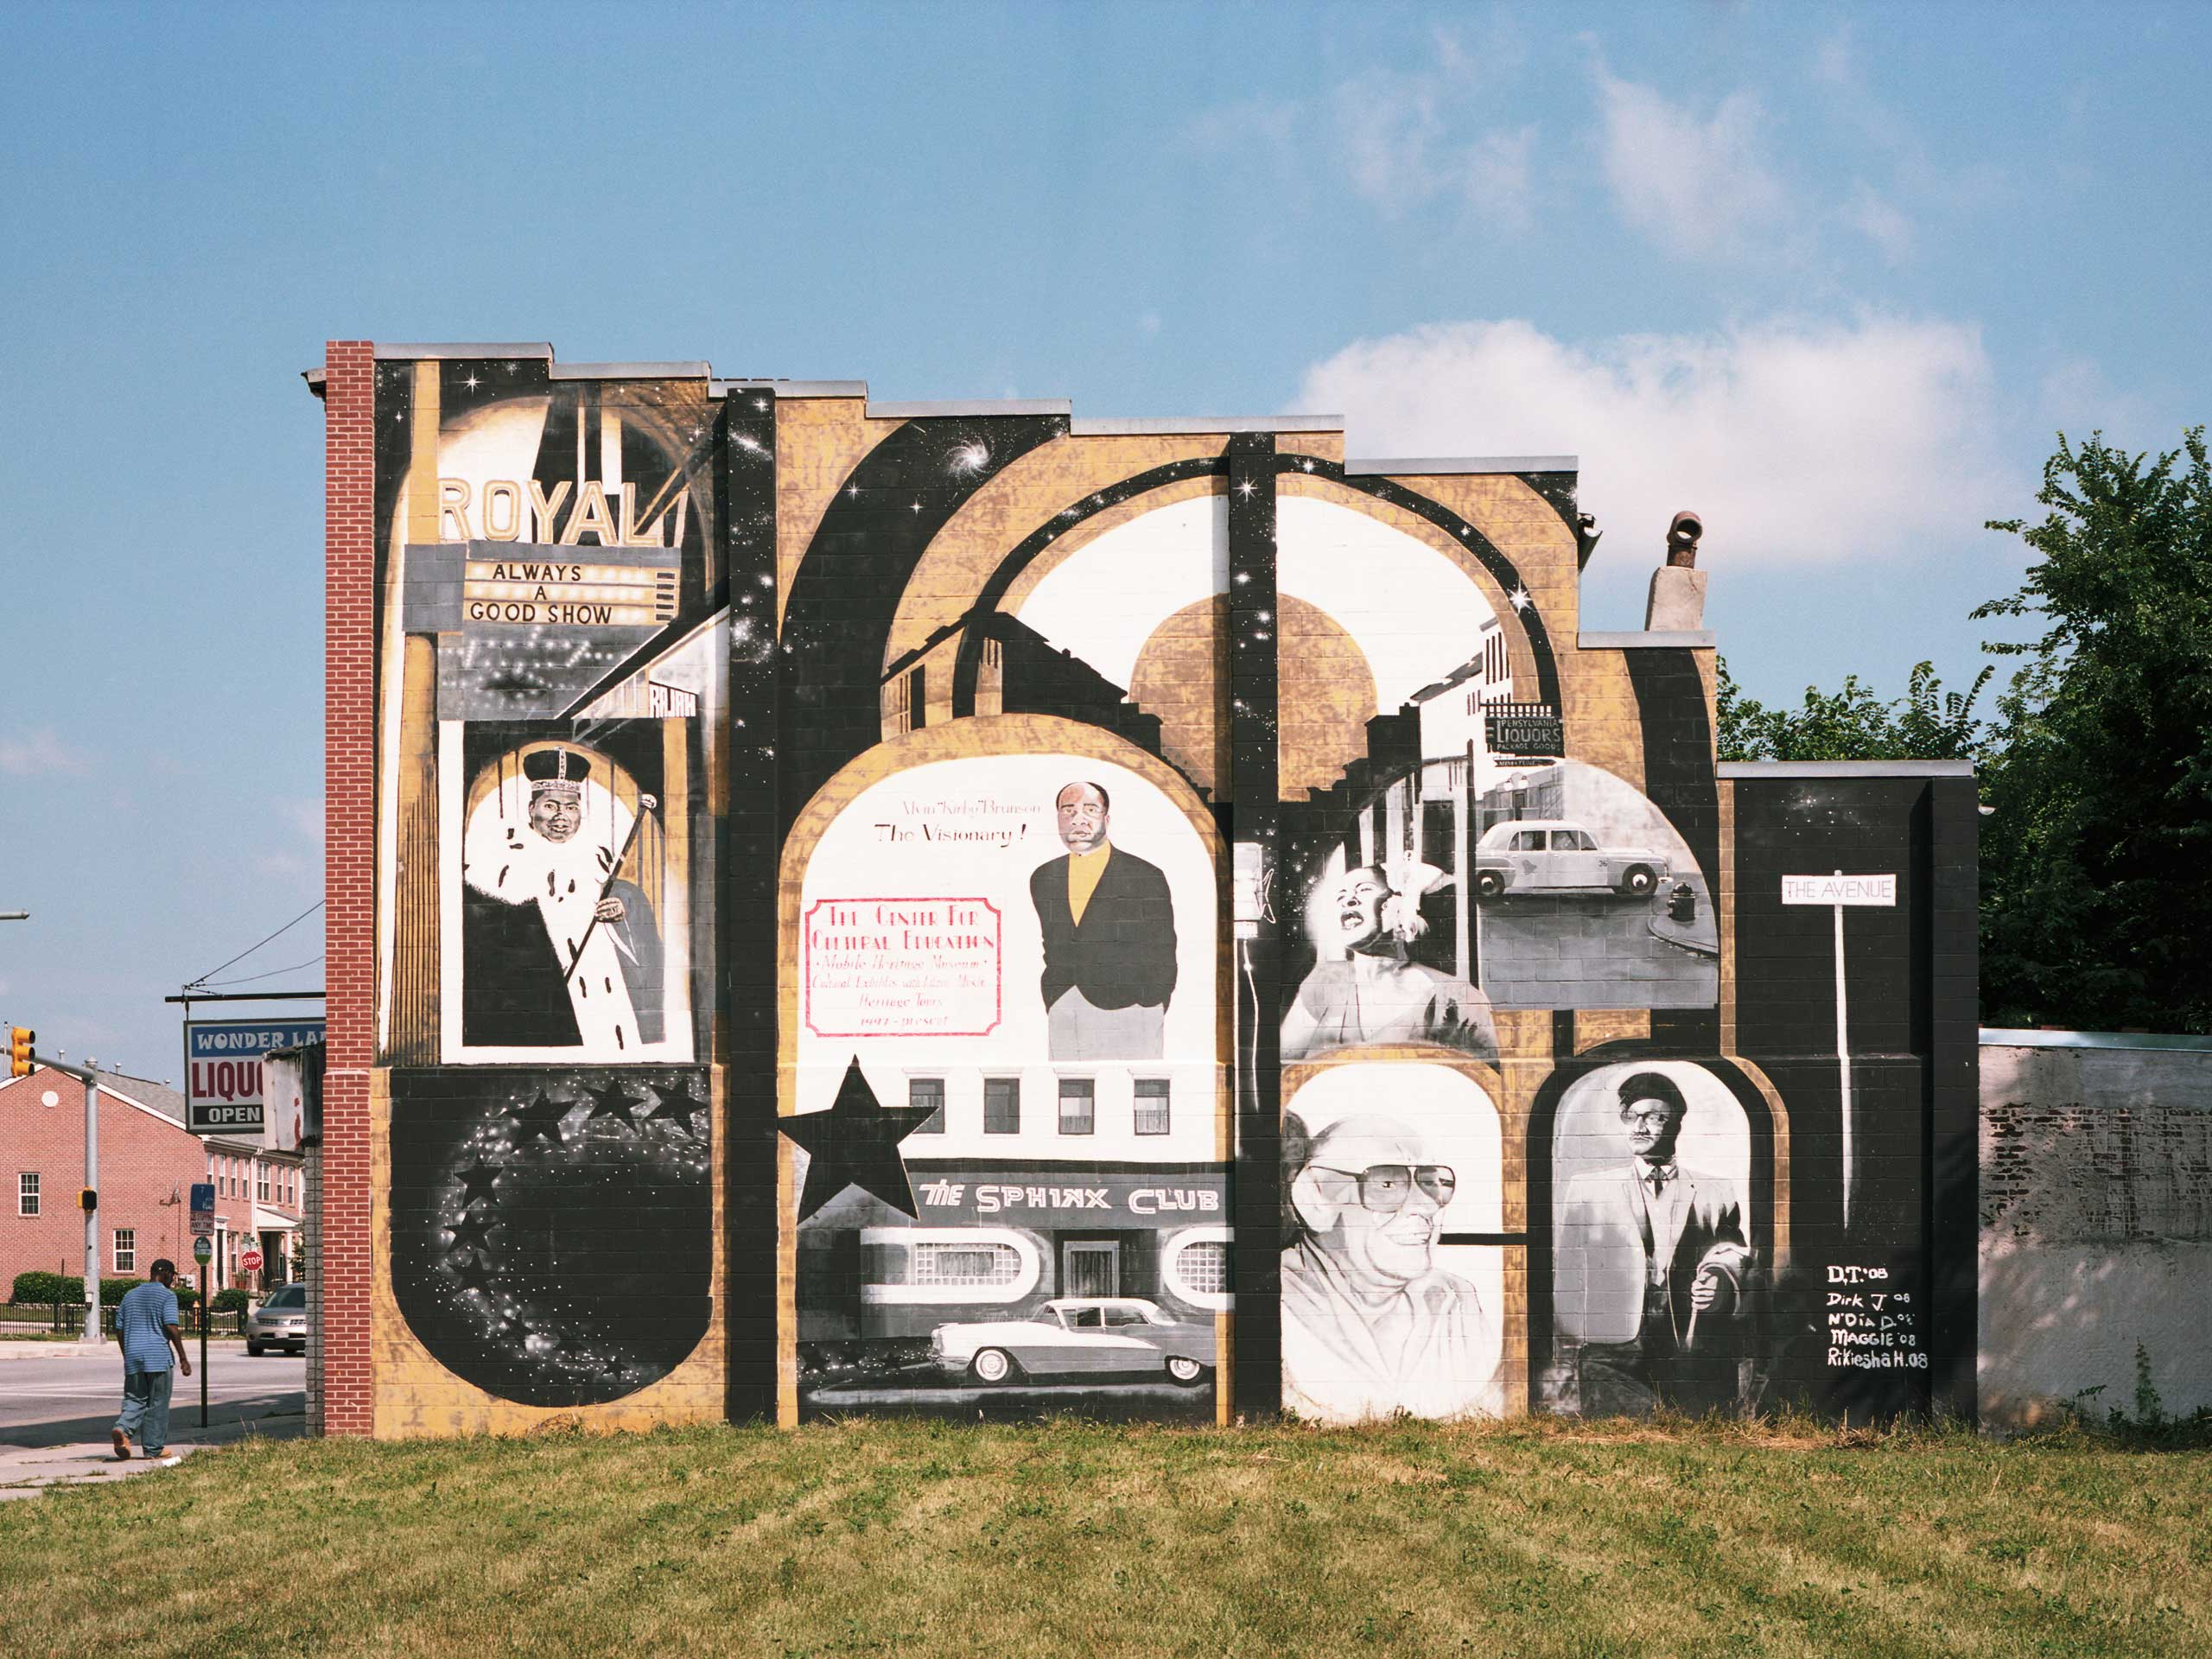 A mural celebrating the musical heritage of Sandtown adorns the side of a building on Pennsylvania Avenue near Presstman Street. With multiple music venues, the Sandtown-Winchester neighborhood was the Harlem of Baltimore, catering to black musicians, artists, writers and intellectuals in the 1950s and 1960s. The Sphinx Club, located near this mural, was once one of the most important music clubs in Baltimore. Louis Armstrong and Fats Waller worked as accompanists and Louis Jordan, Duke Ellington, Etta James, Nat King Cole, The Temptations, The Supremes and Count Basie all performed at the Sphinx.